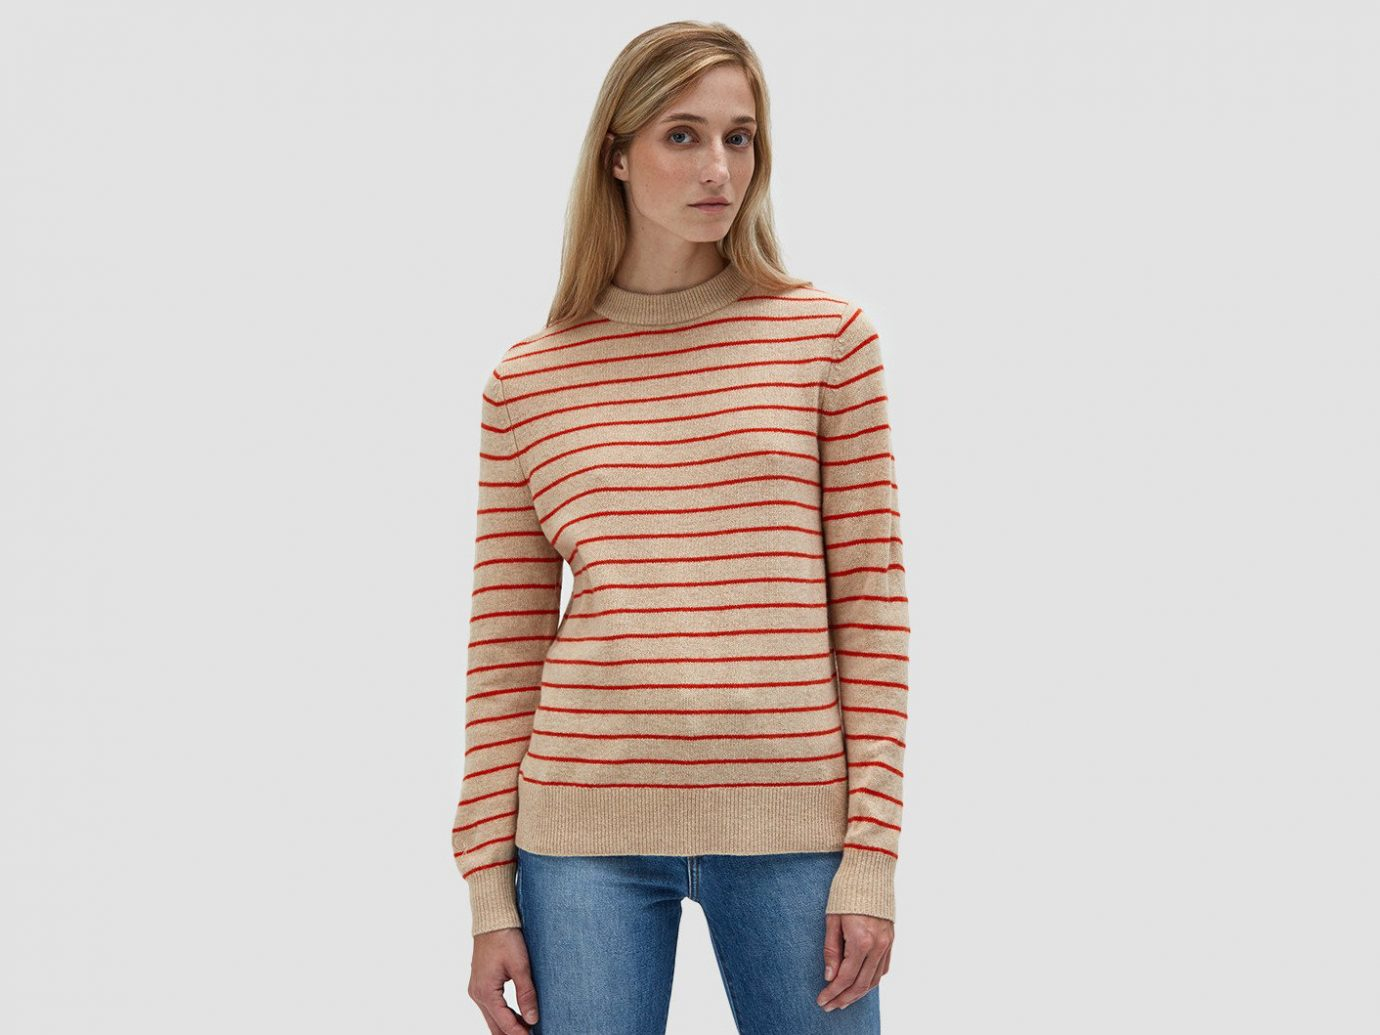 Fall Travel Style + Design Travel Shop Weekend Getaways person clothing sleeve shoulder sweater neck joint standing long sleeved t shirt posing peach woolen trouser